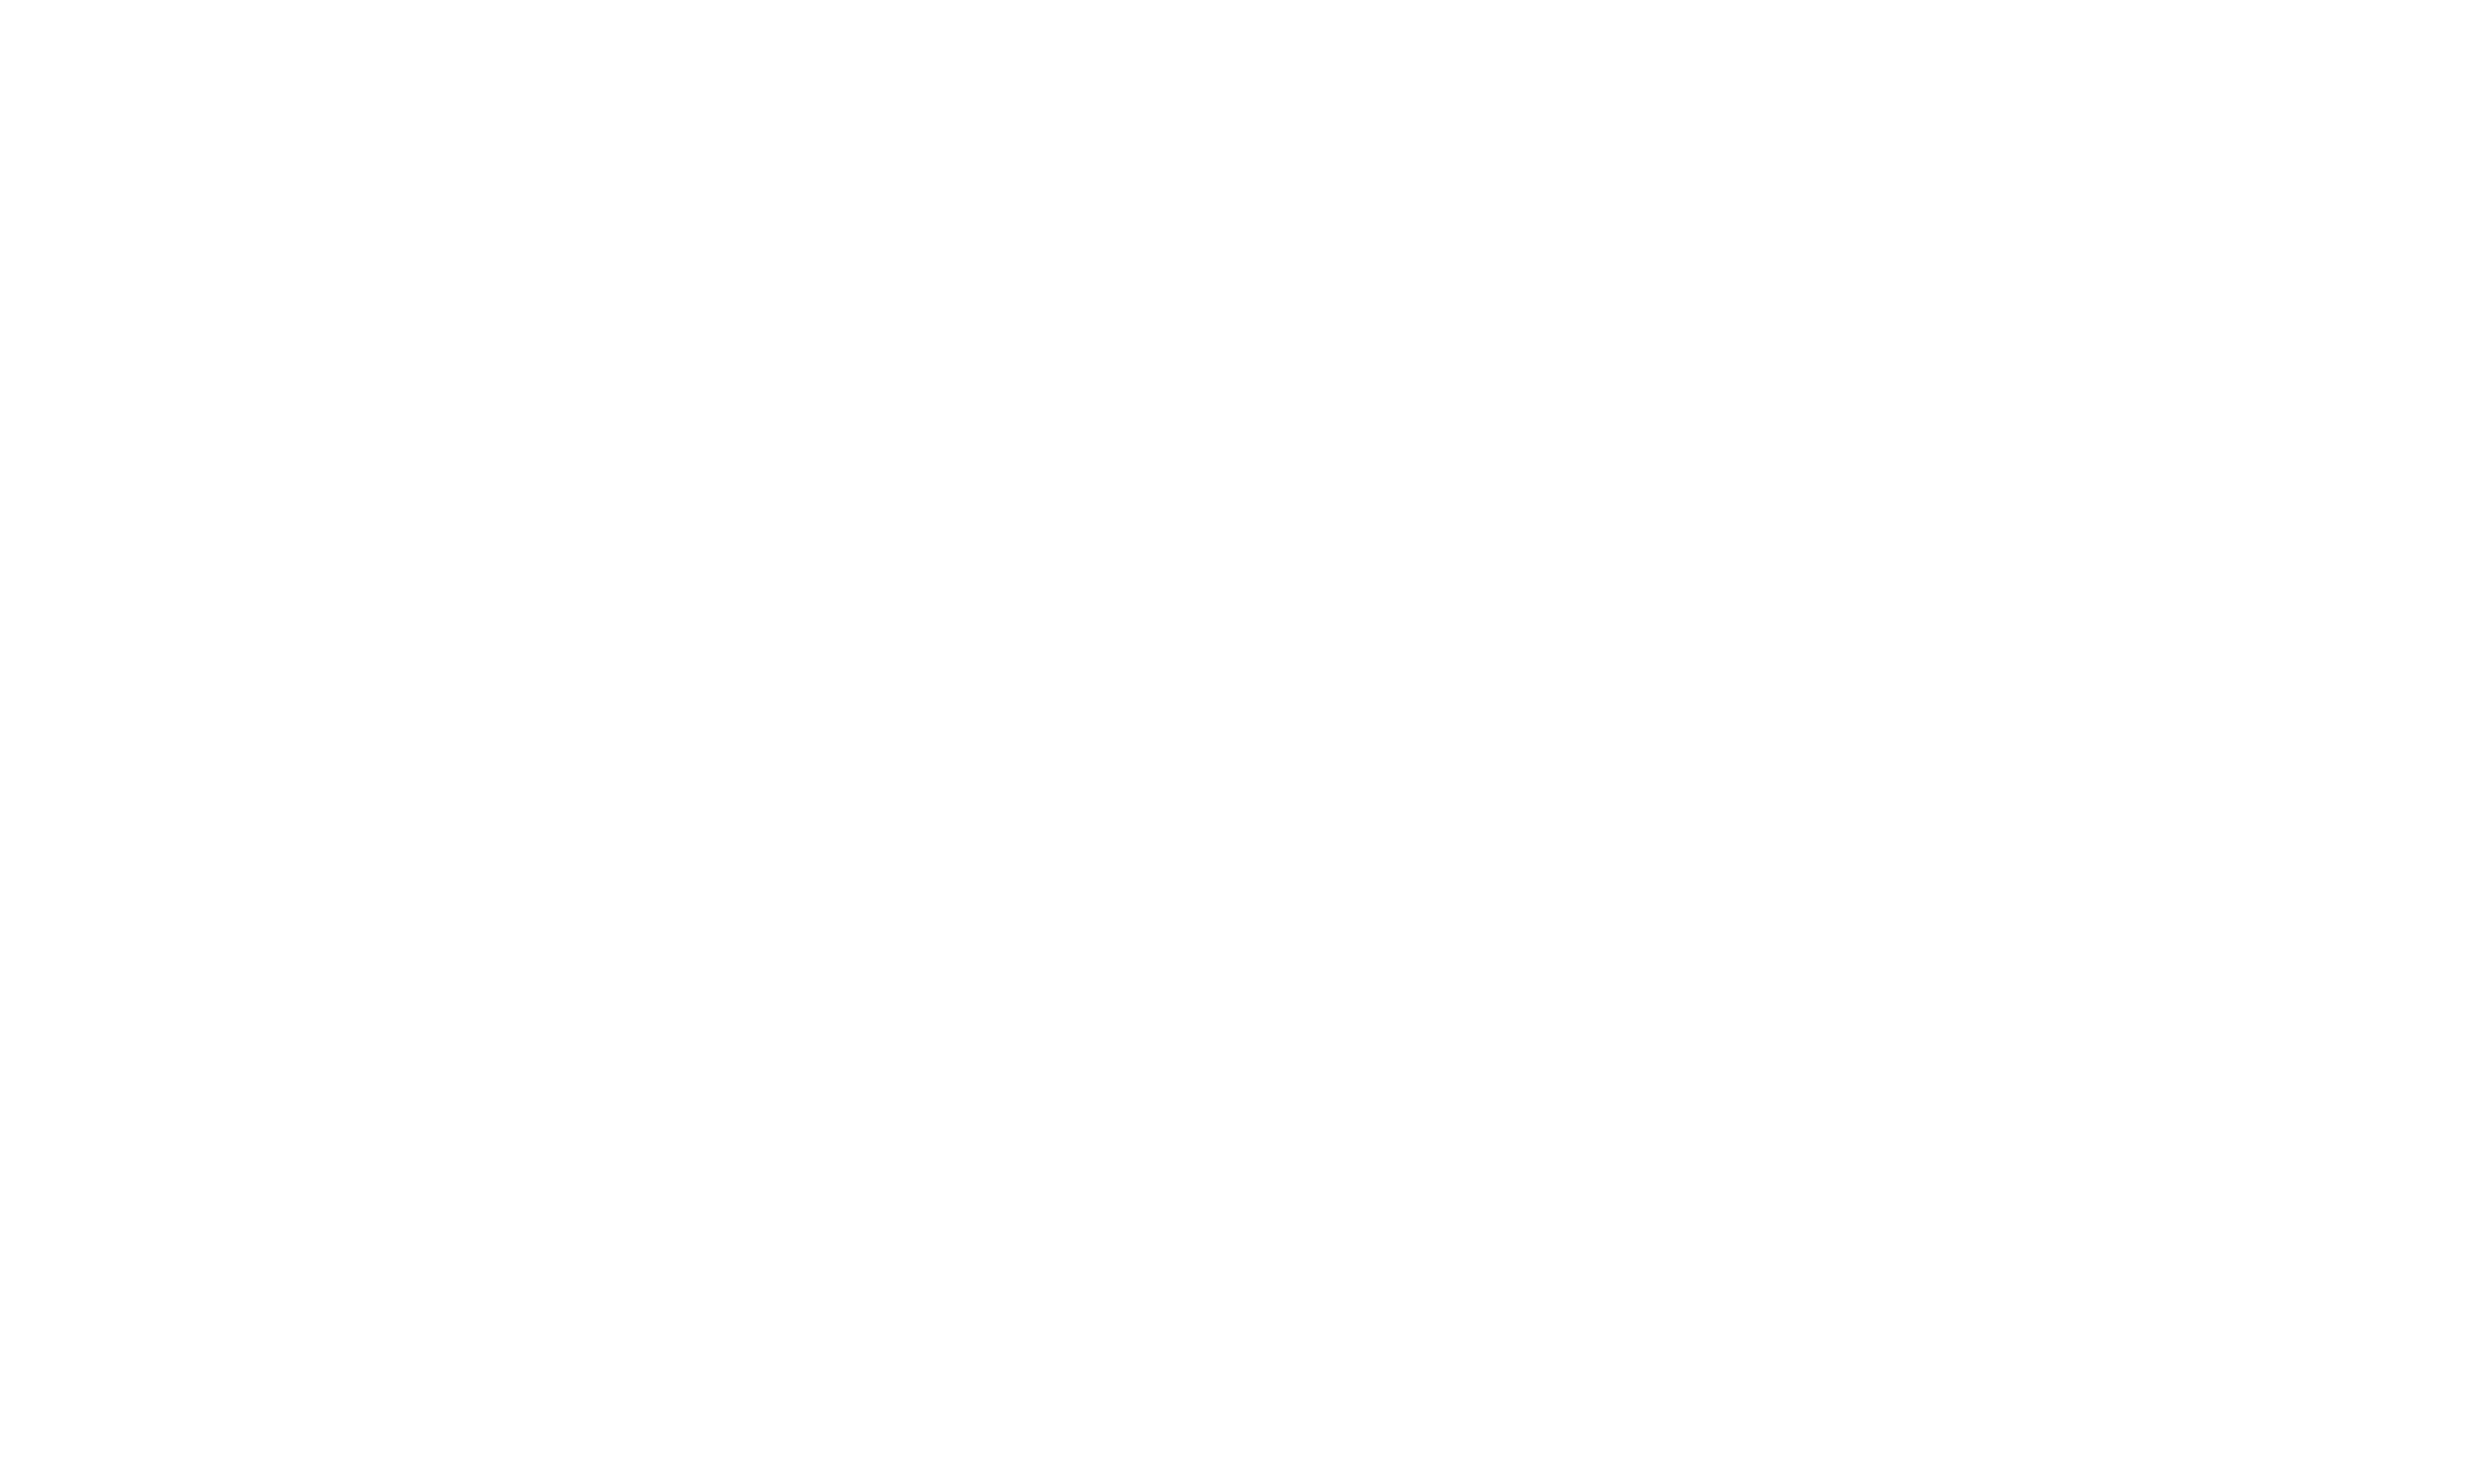 CHARLESTOWN BOOTCAMP